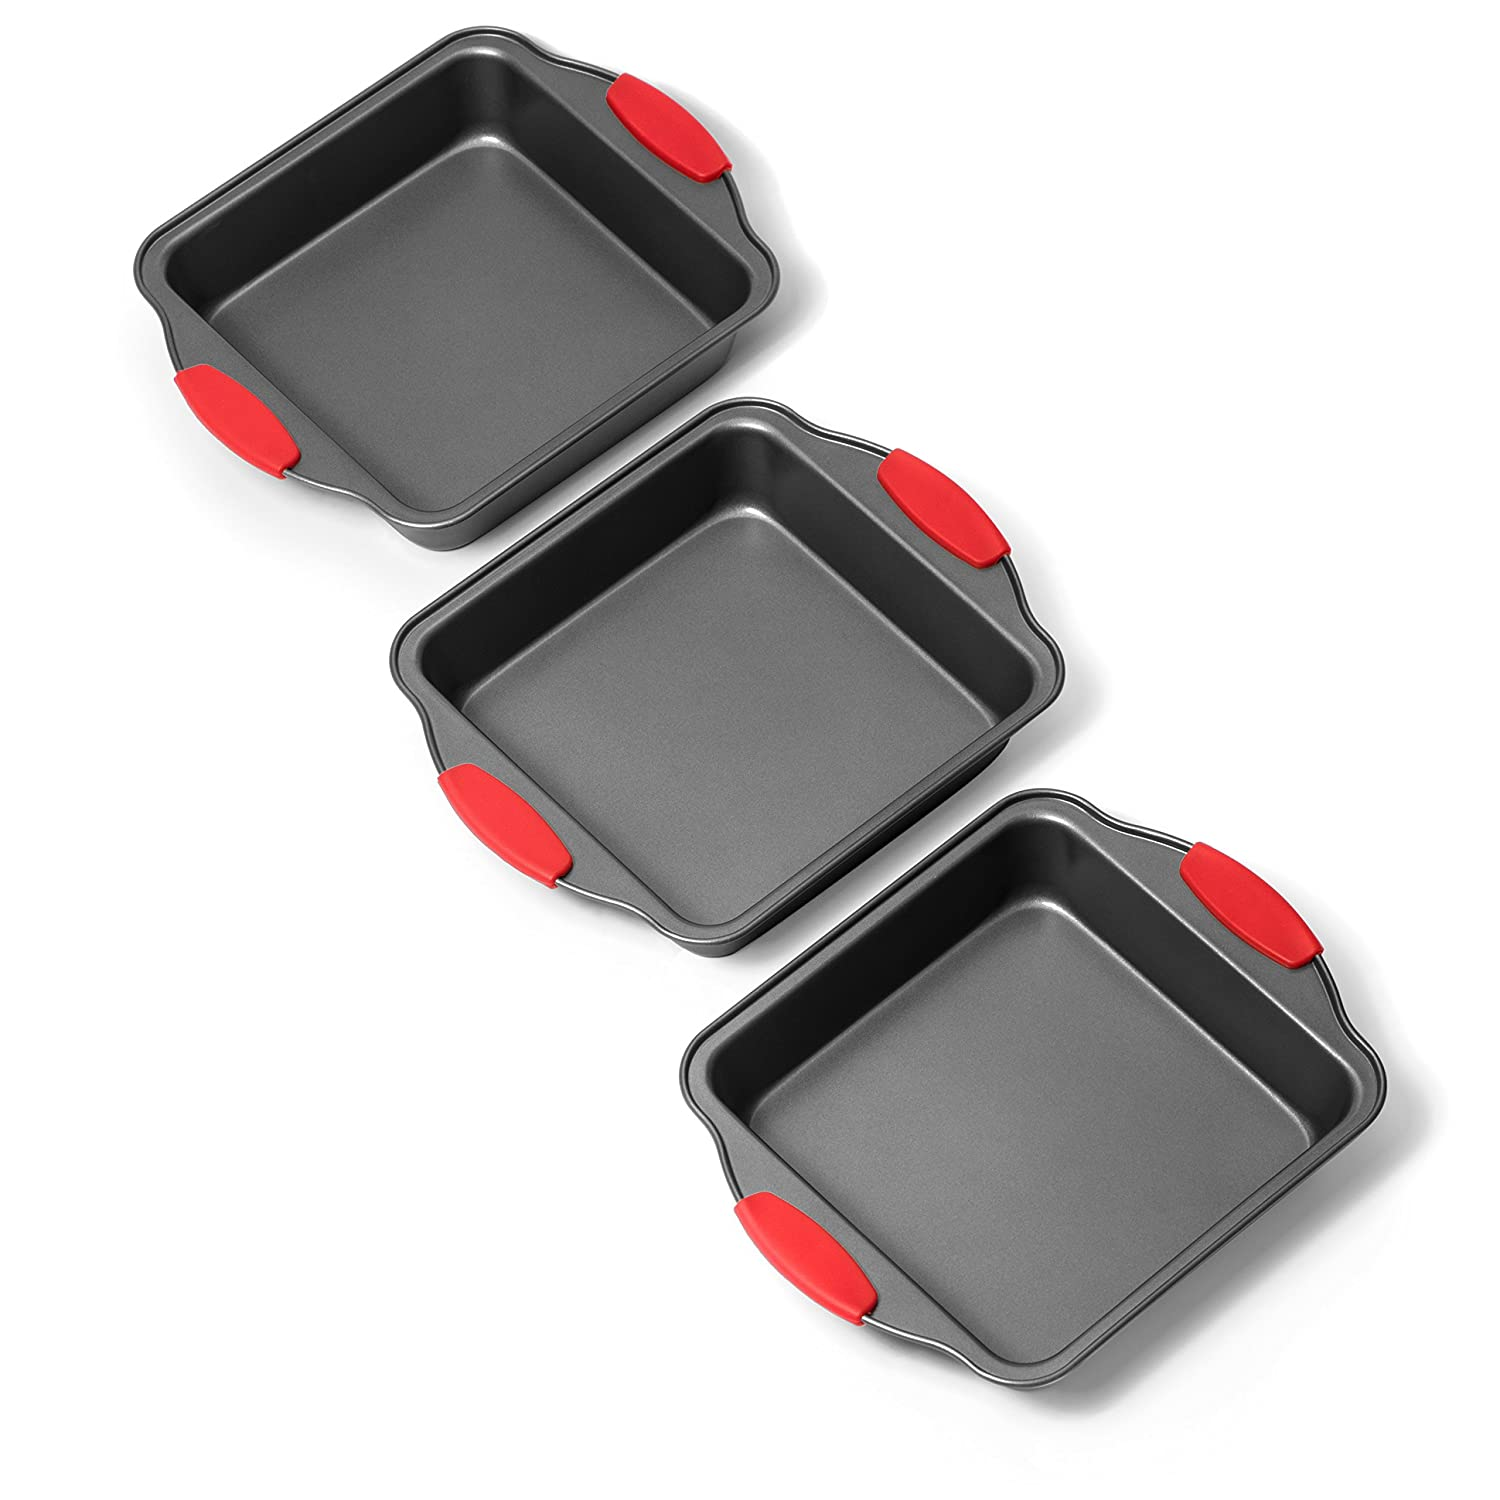 Elite Bakeware 3 Piece Square Baking Pan Set - NonStick Bakeware - Baking Pans Set Elite Kitchenware